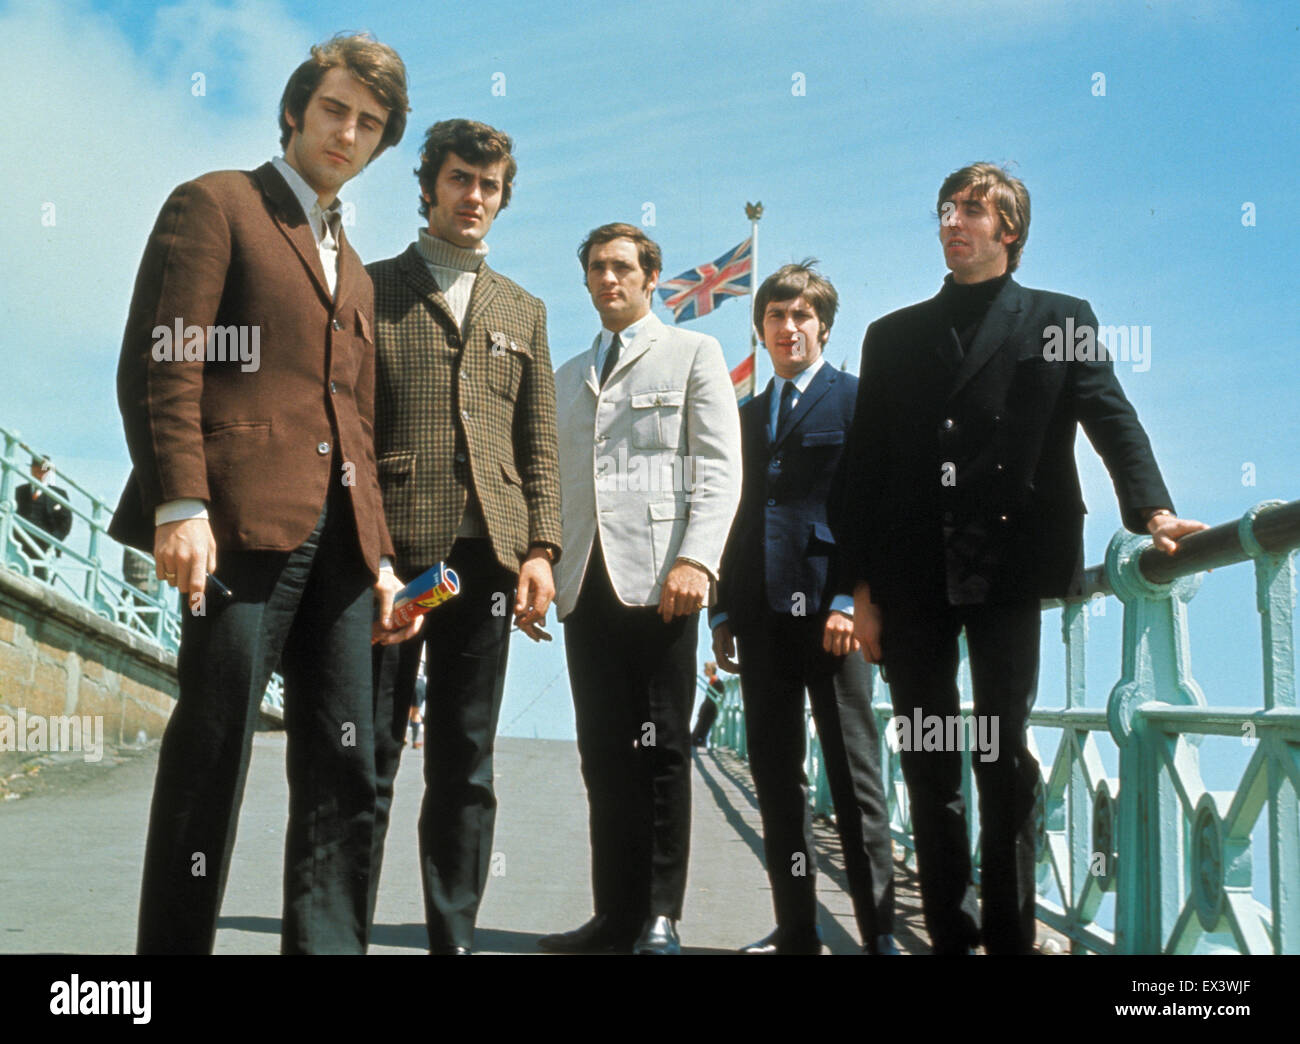 The Moody Blues Band Stock Photos & The Moody Blues Band